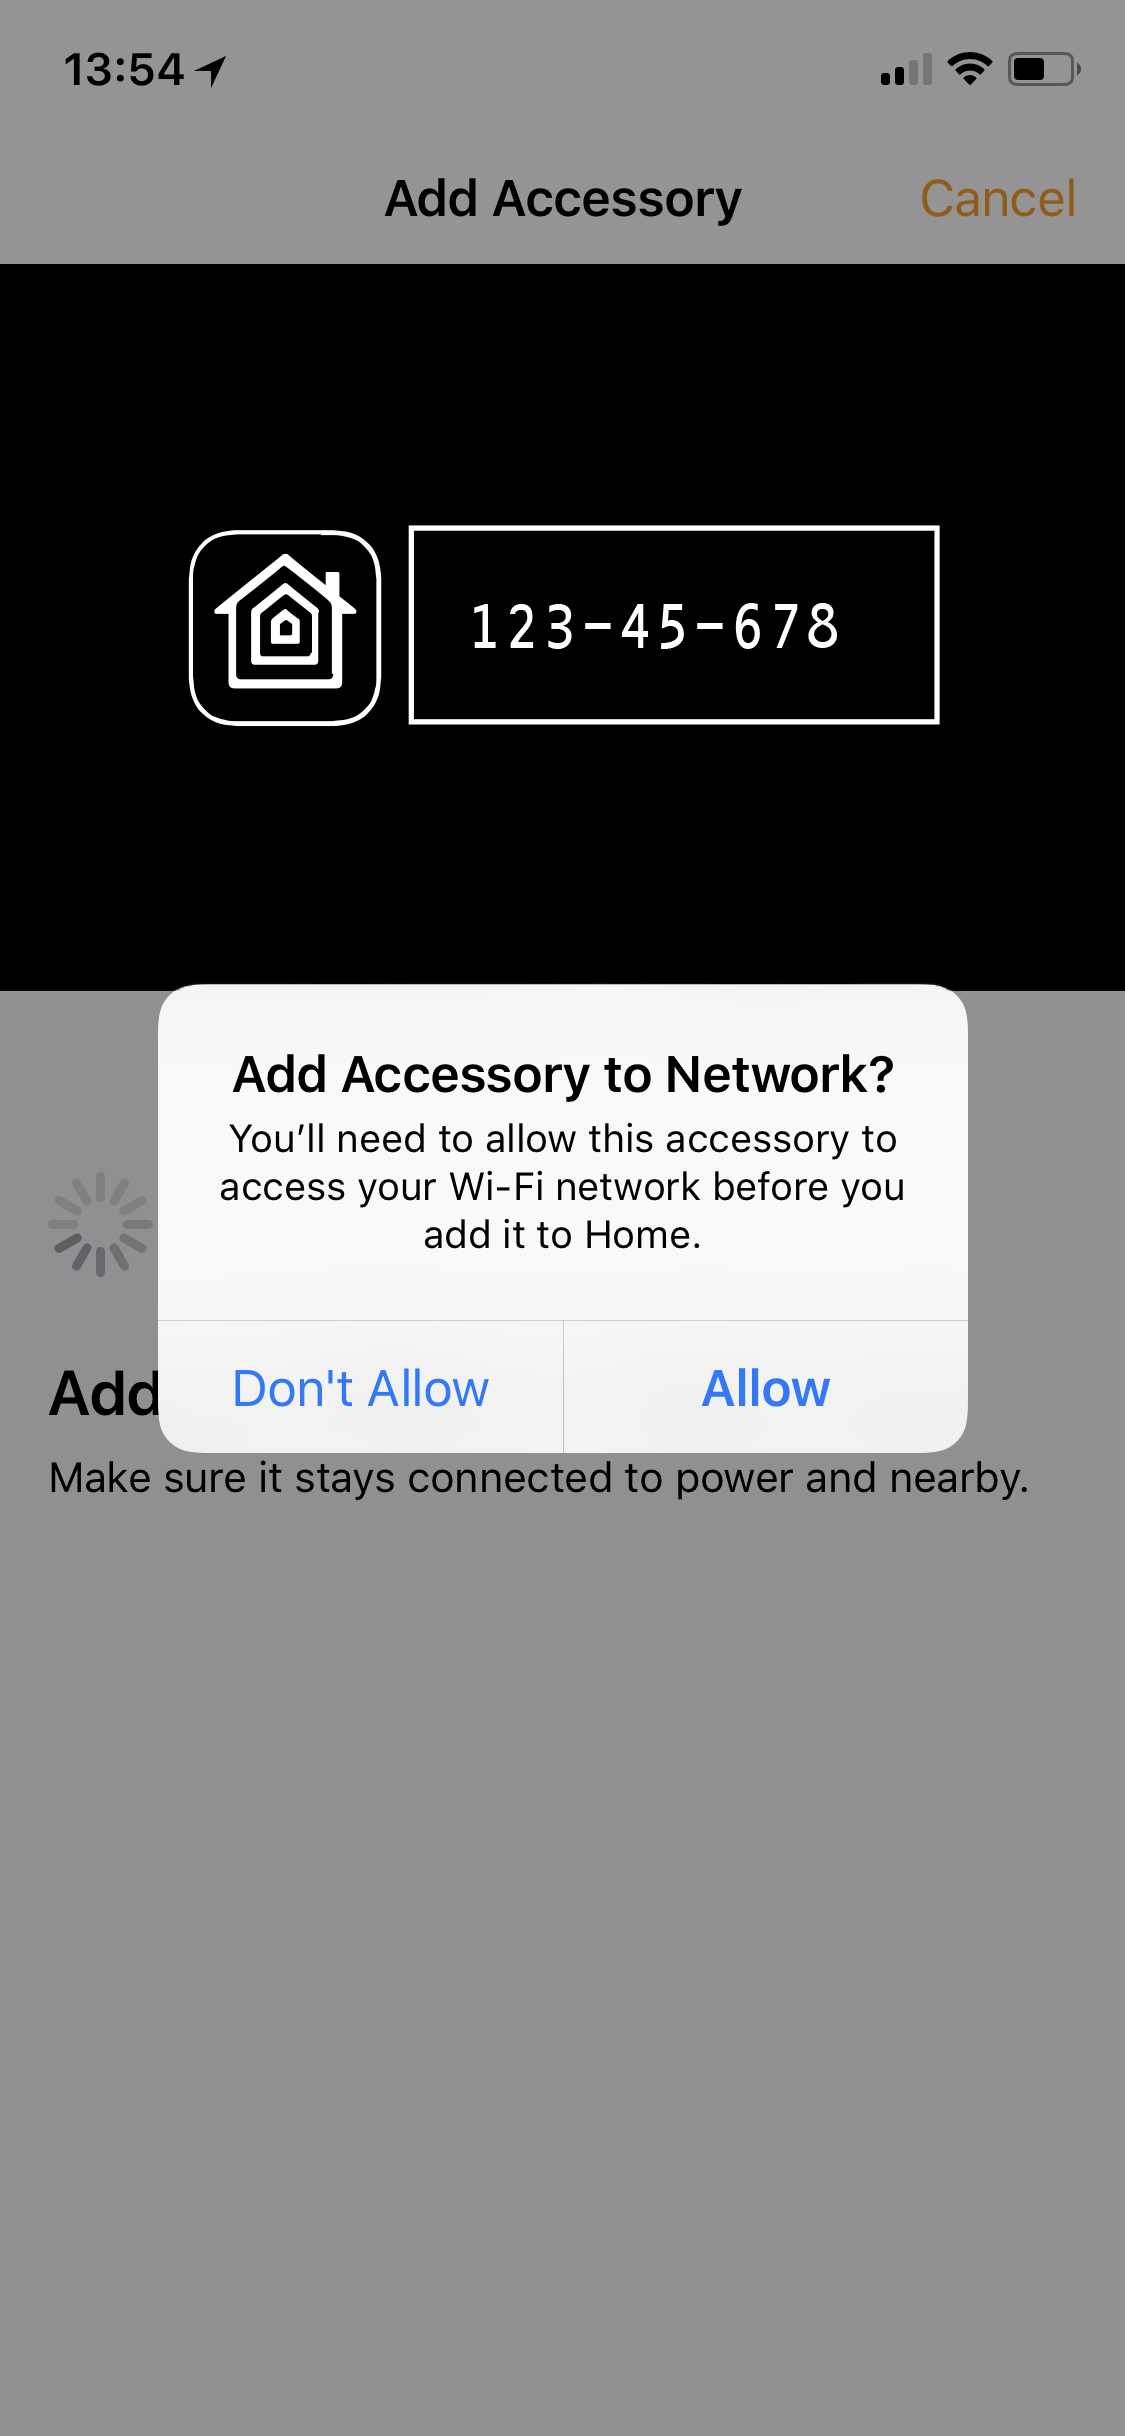 Home_add_accessory_to_network.png